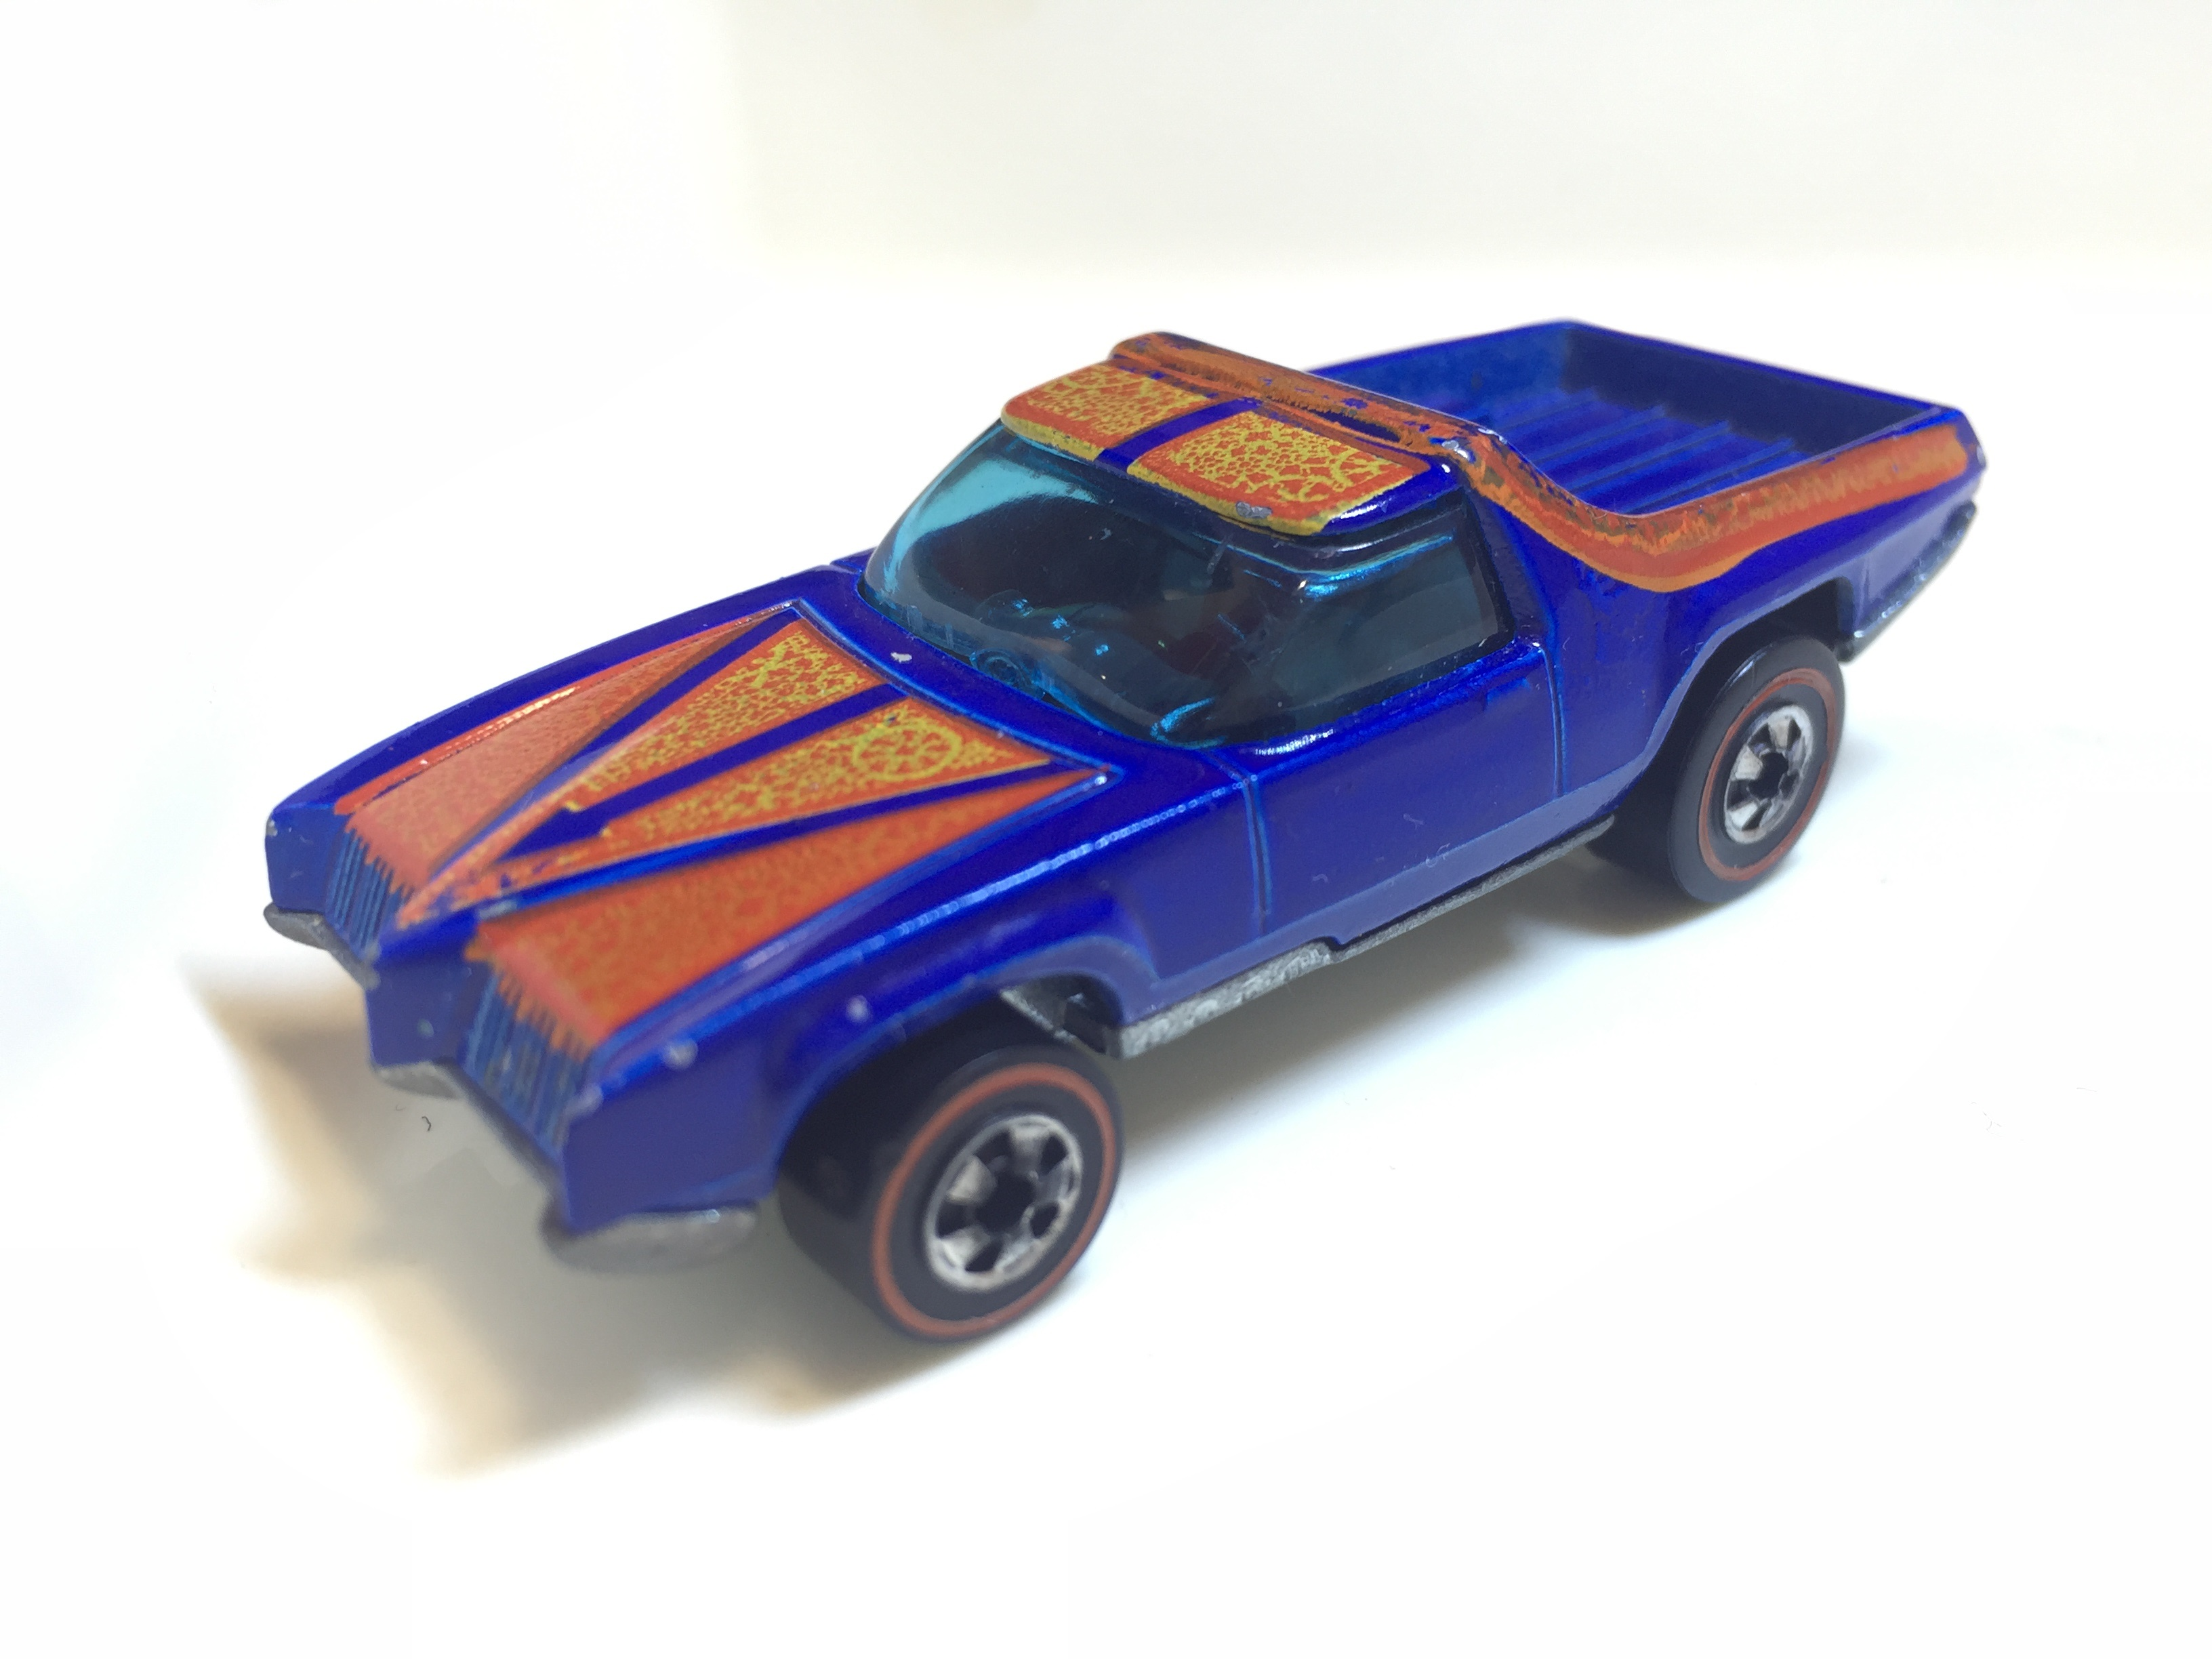 3264x2448 Mr.ae Hot Wheels Talking About Articles